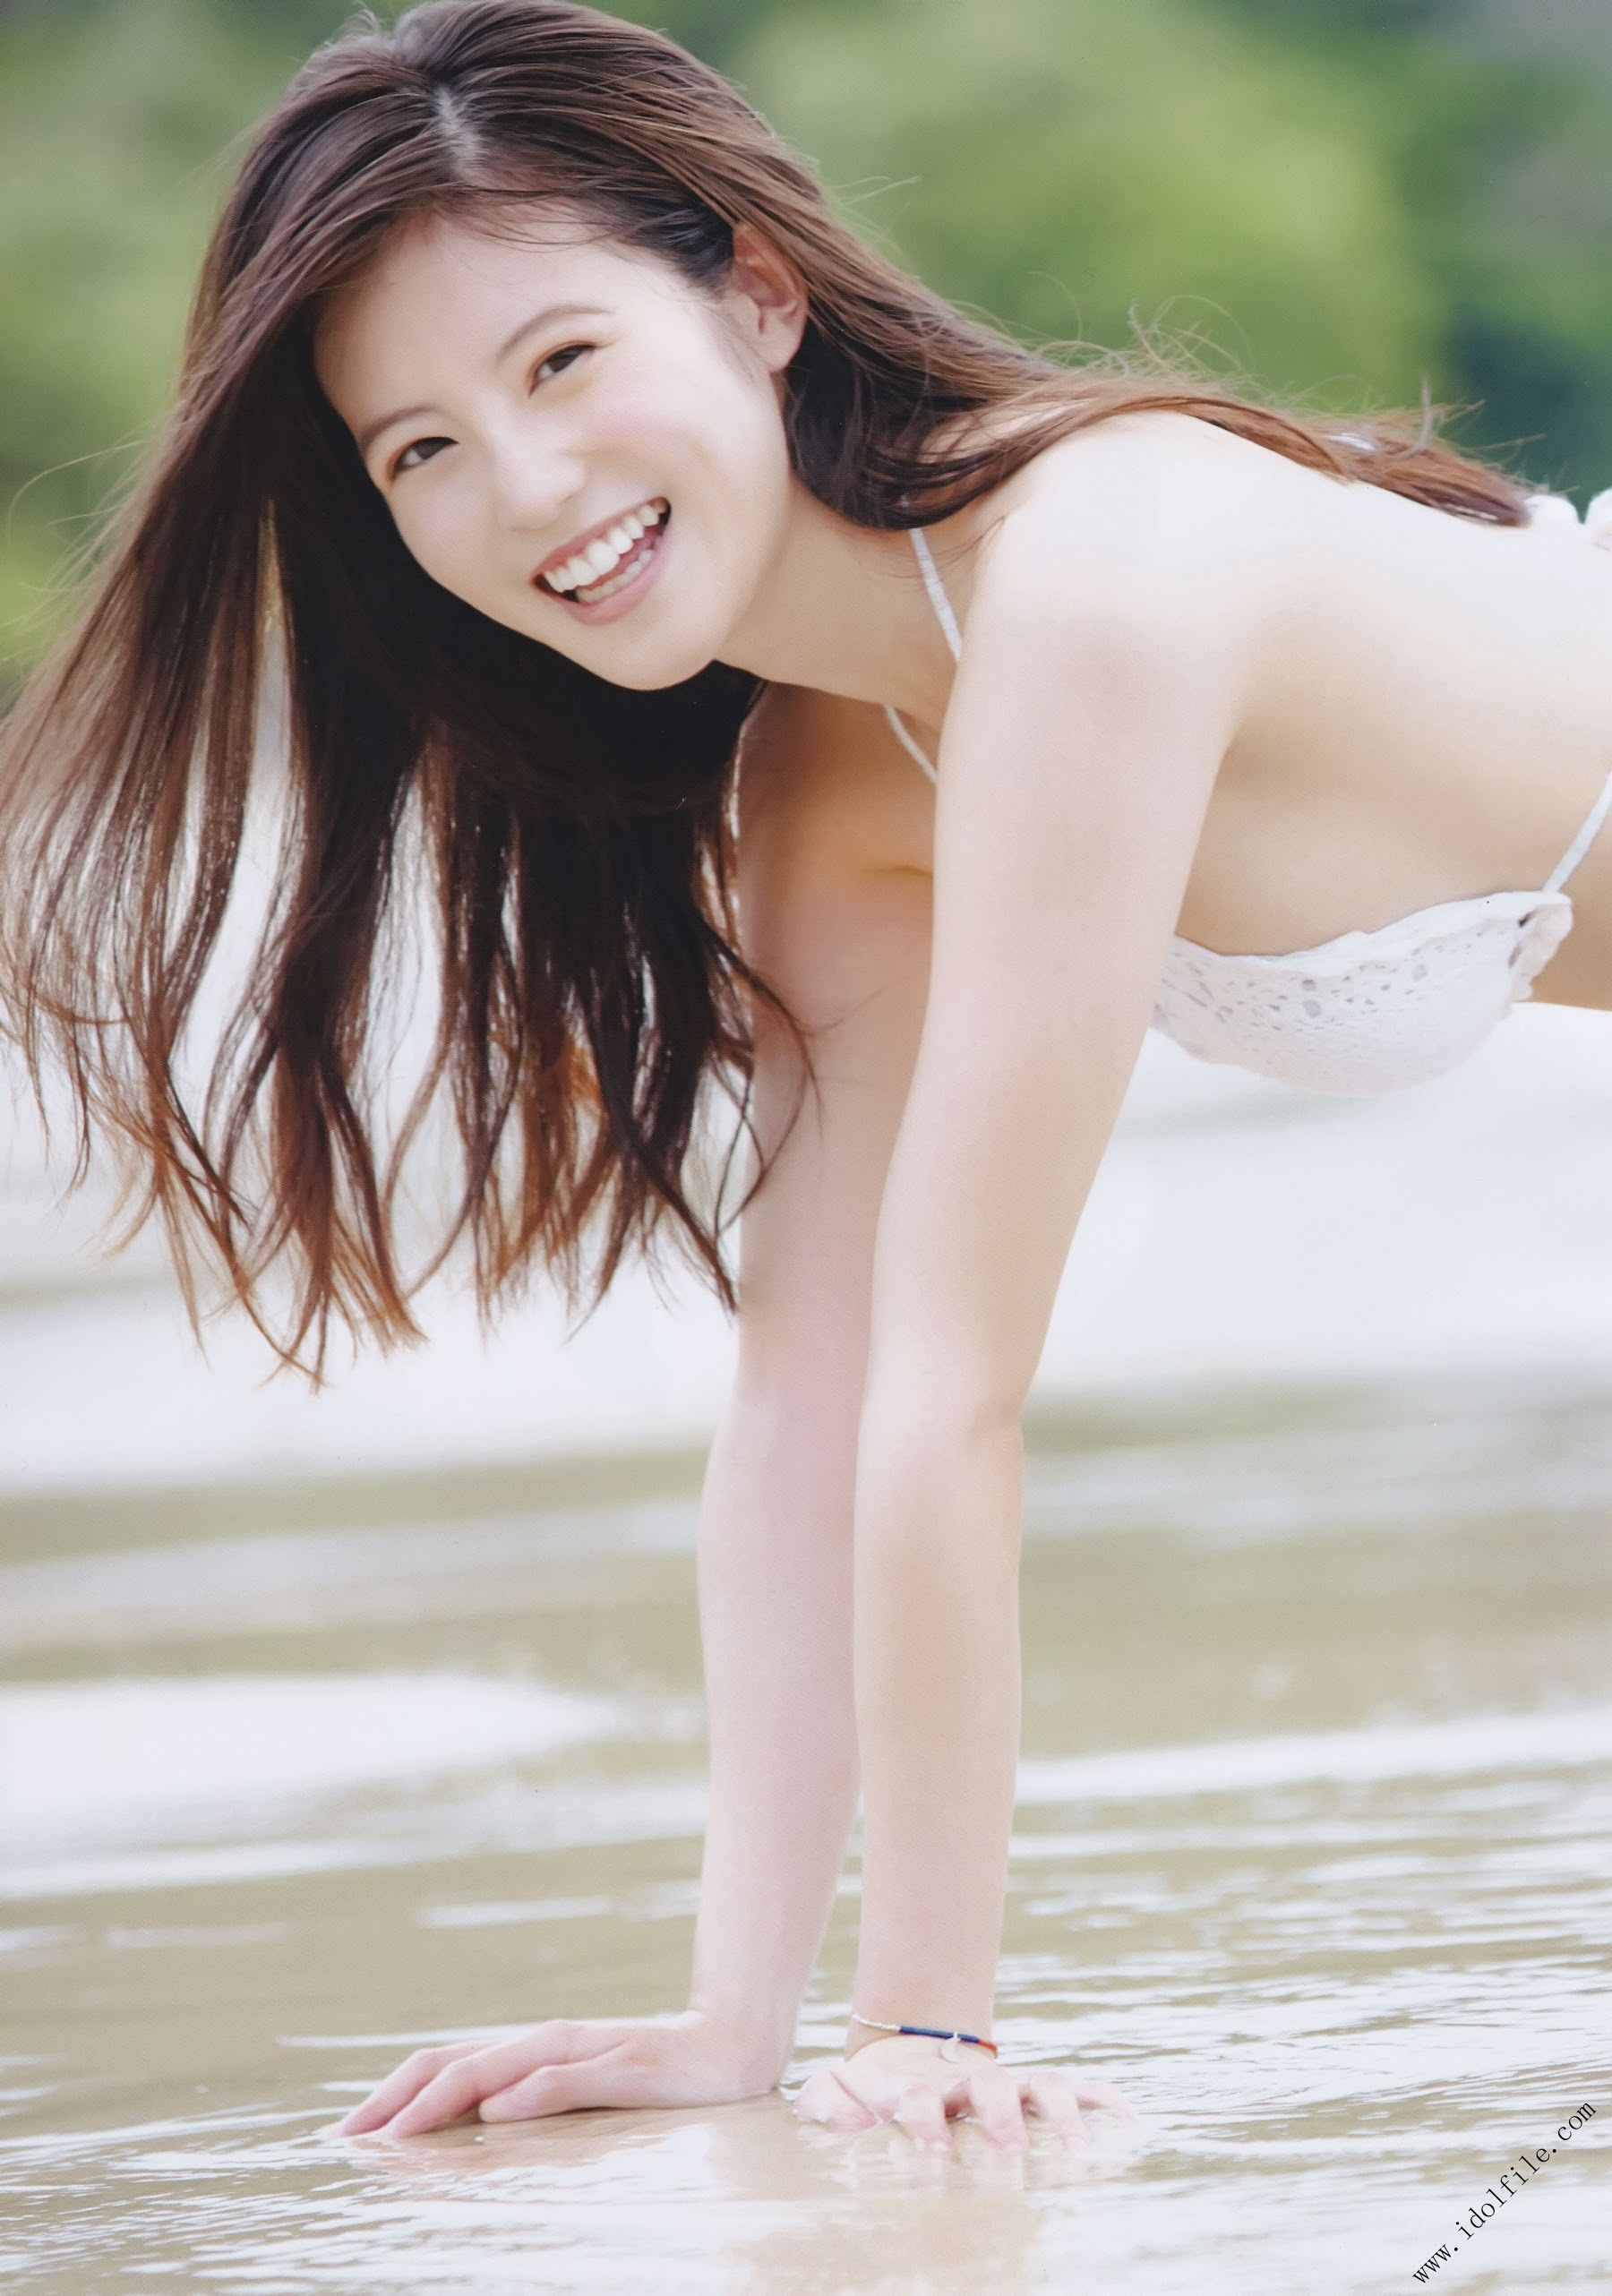 Pretty and beautiful, 22 years old and innocent Moving to the next stage as an actress Mio Imada031